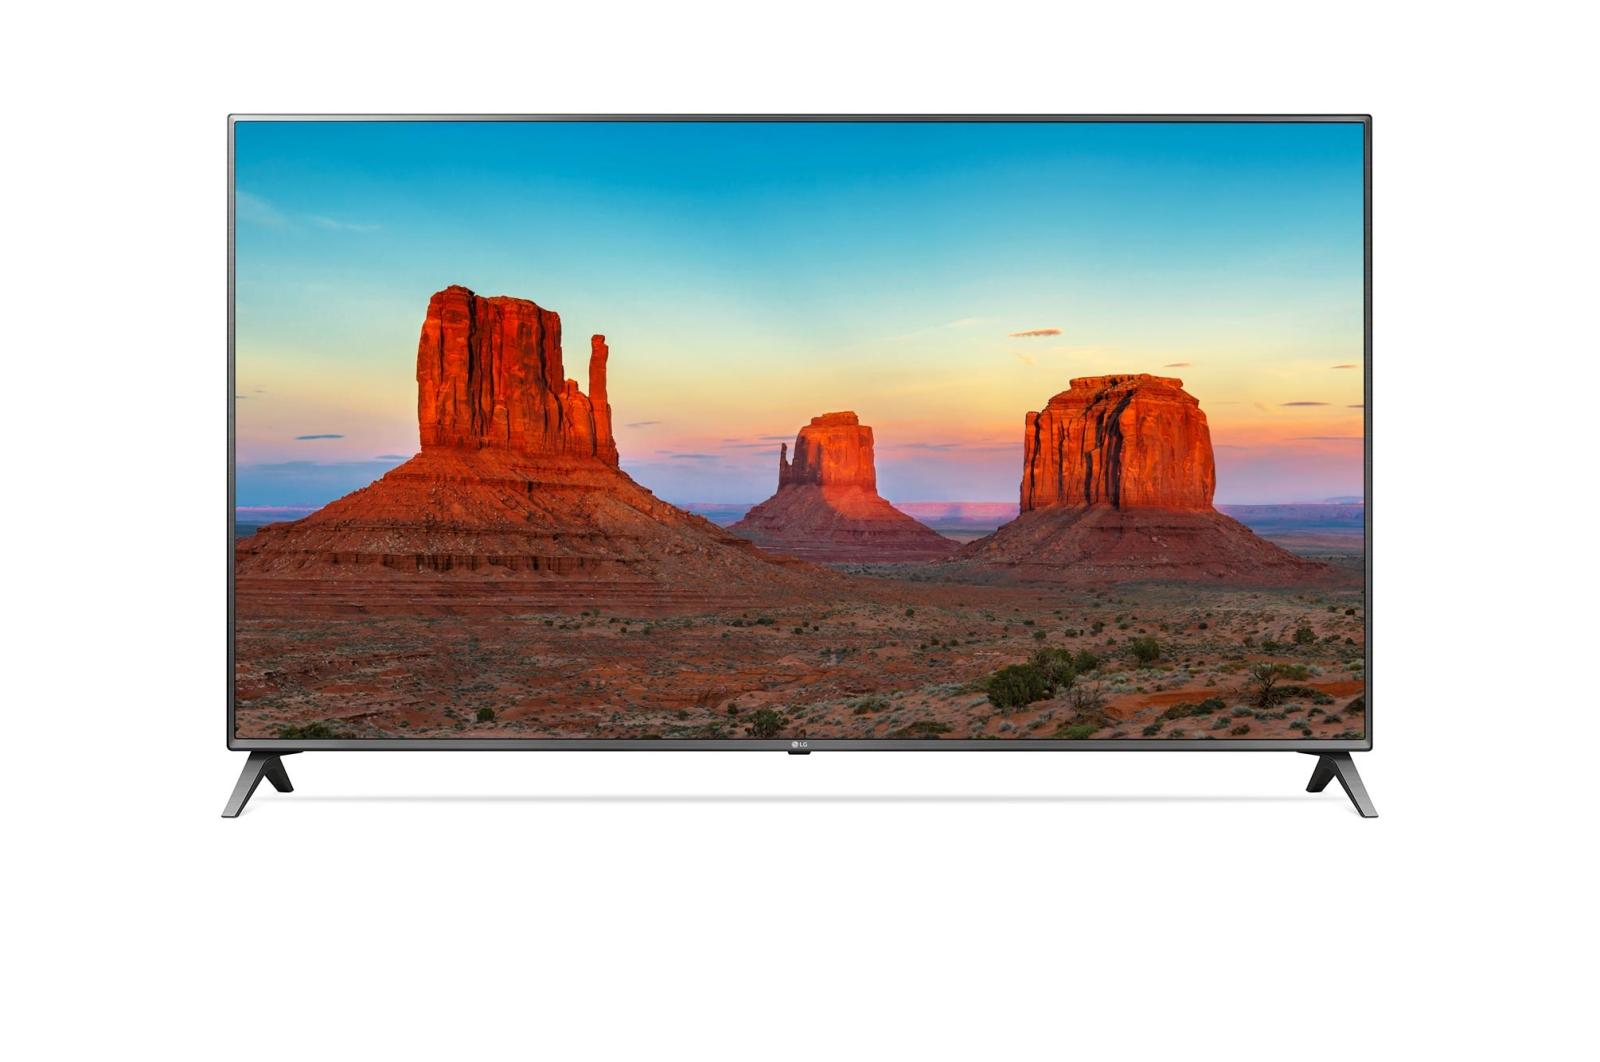 LG 43 inch UHD Smart TV 43UK6500 - Khusus Jadetabek